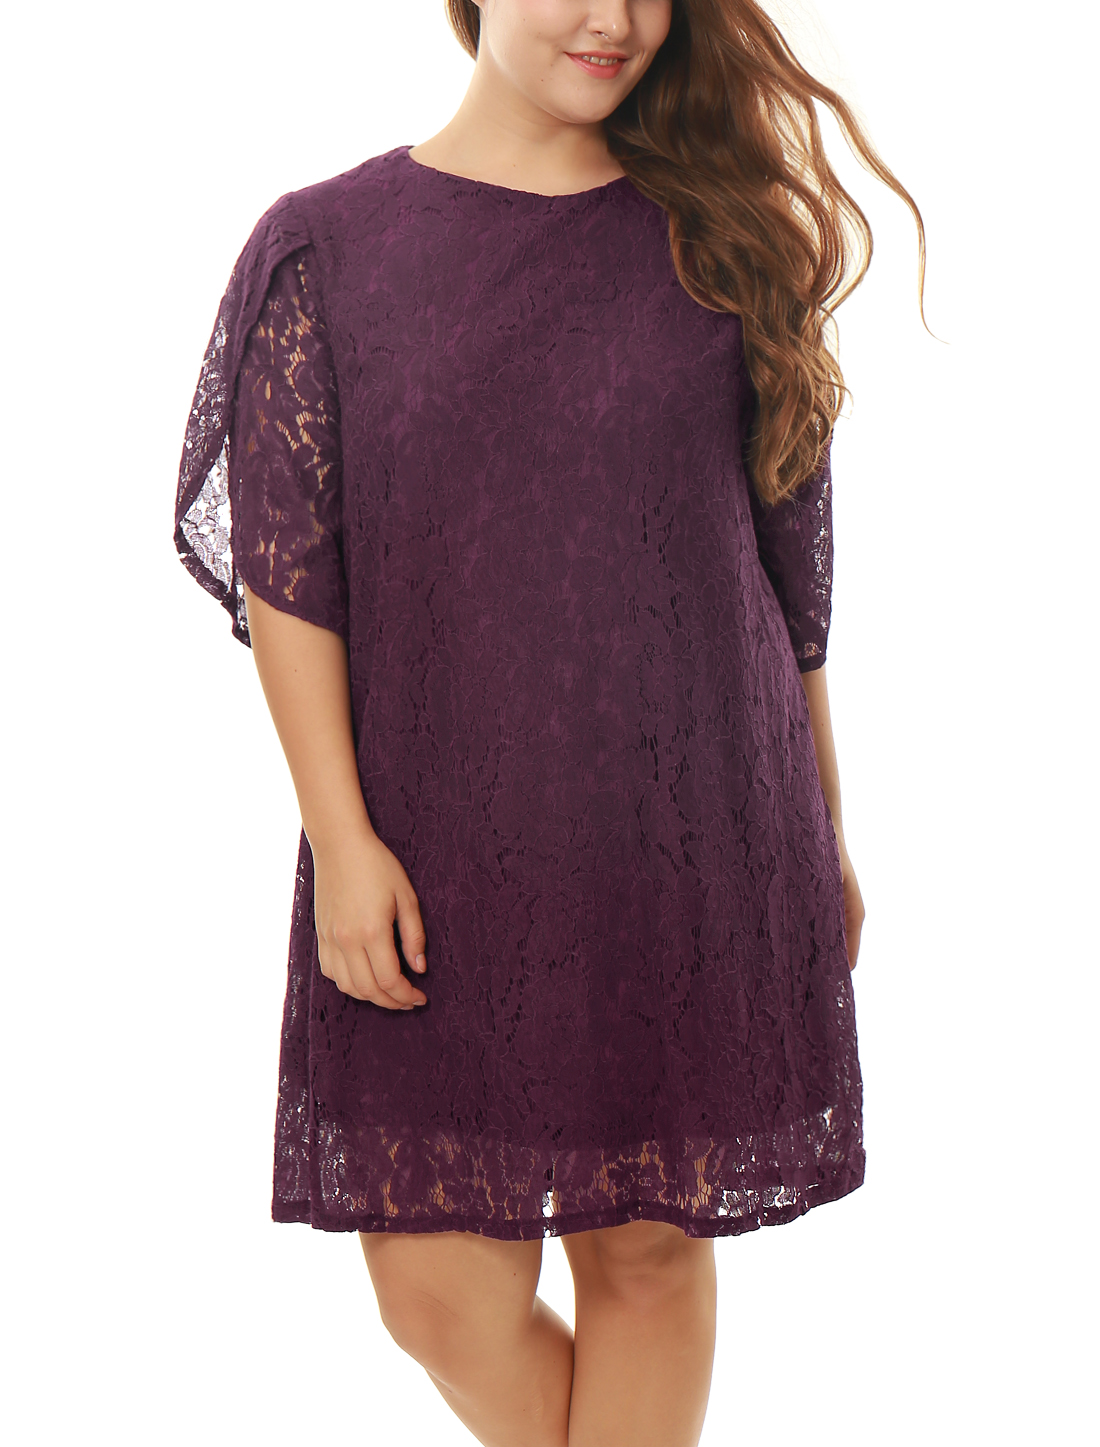 Women Plus Size Tulip Sleeves Floral Lace Shift Dress Burgundy 1X